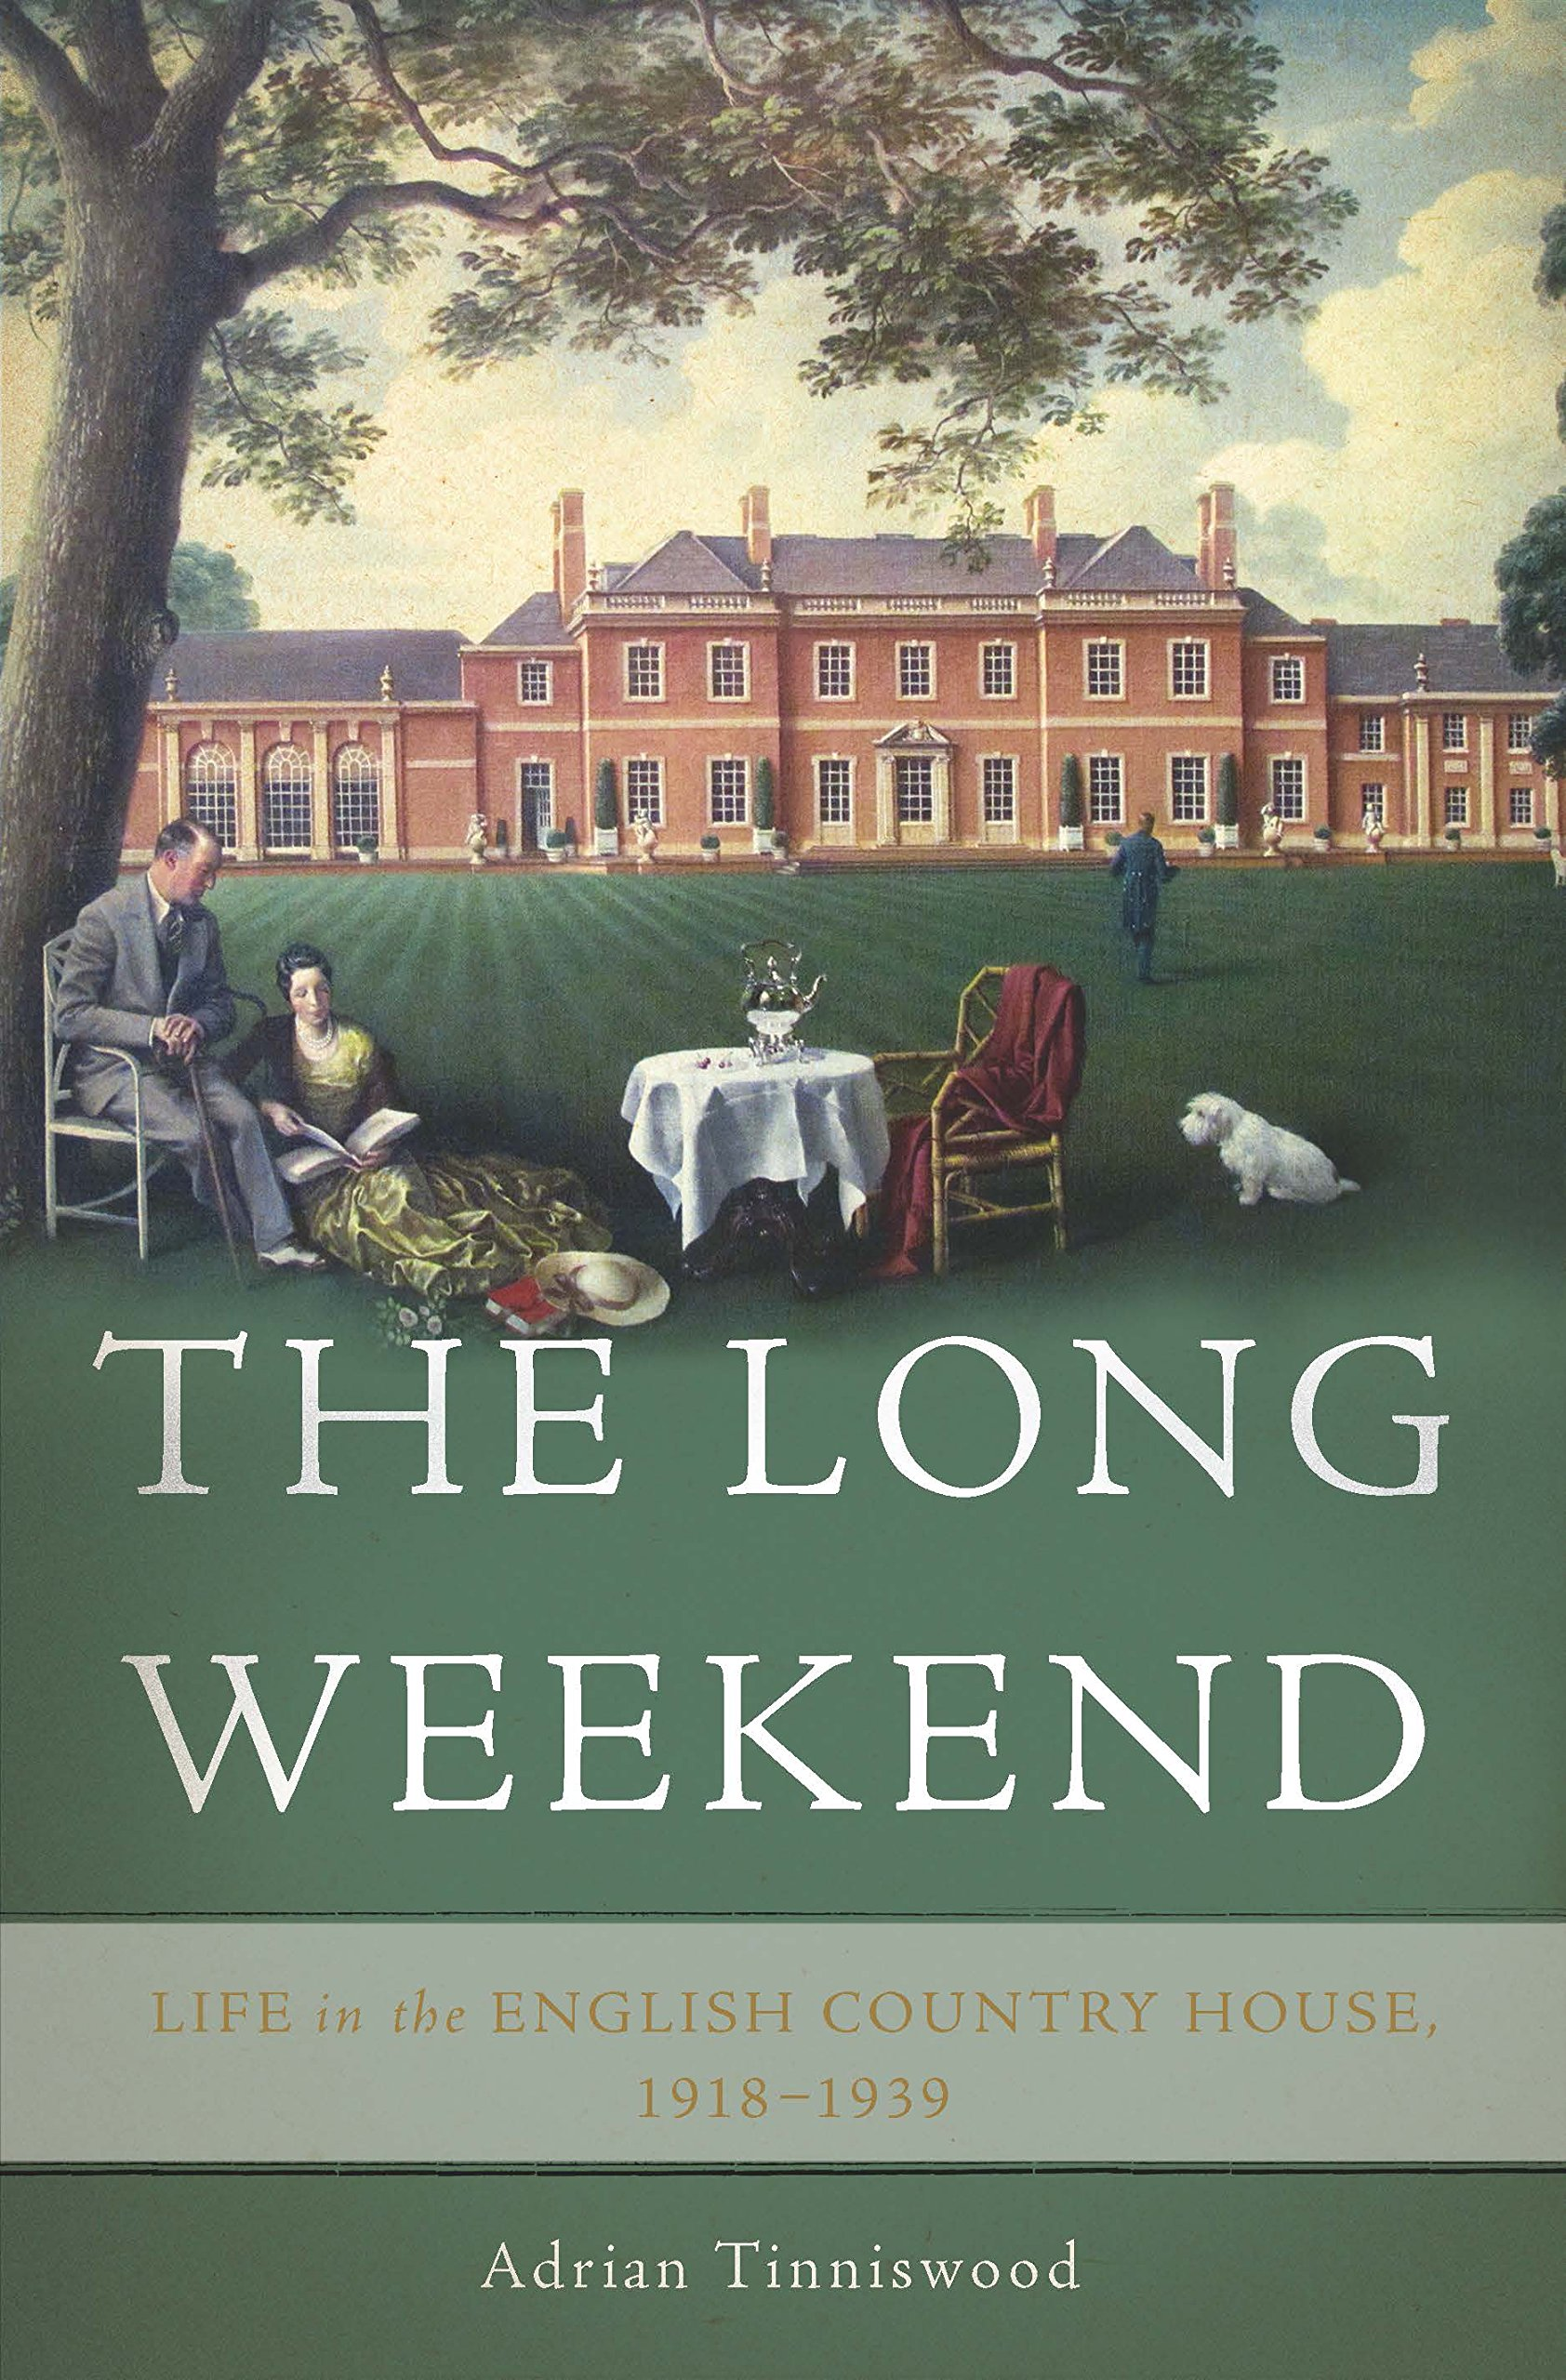 The long weekend life in the english country house 1918 1939 the long weekend life in the english country house 1918 1939 adrian tinniswood 9780465048984 amazon books fandeluxe Image collections